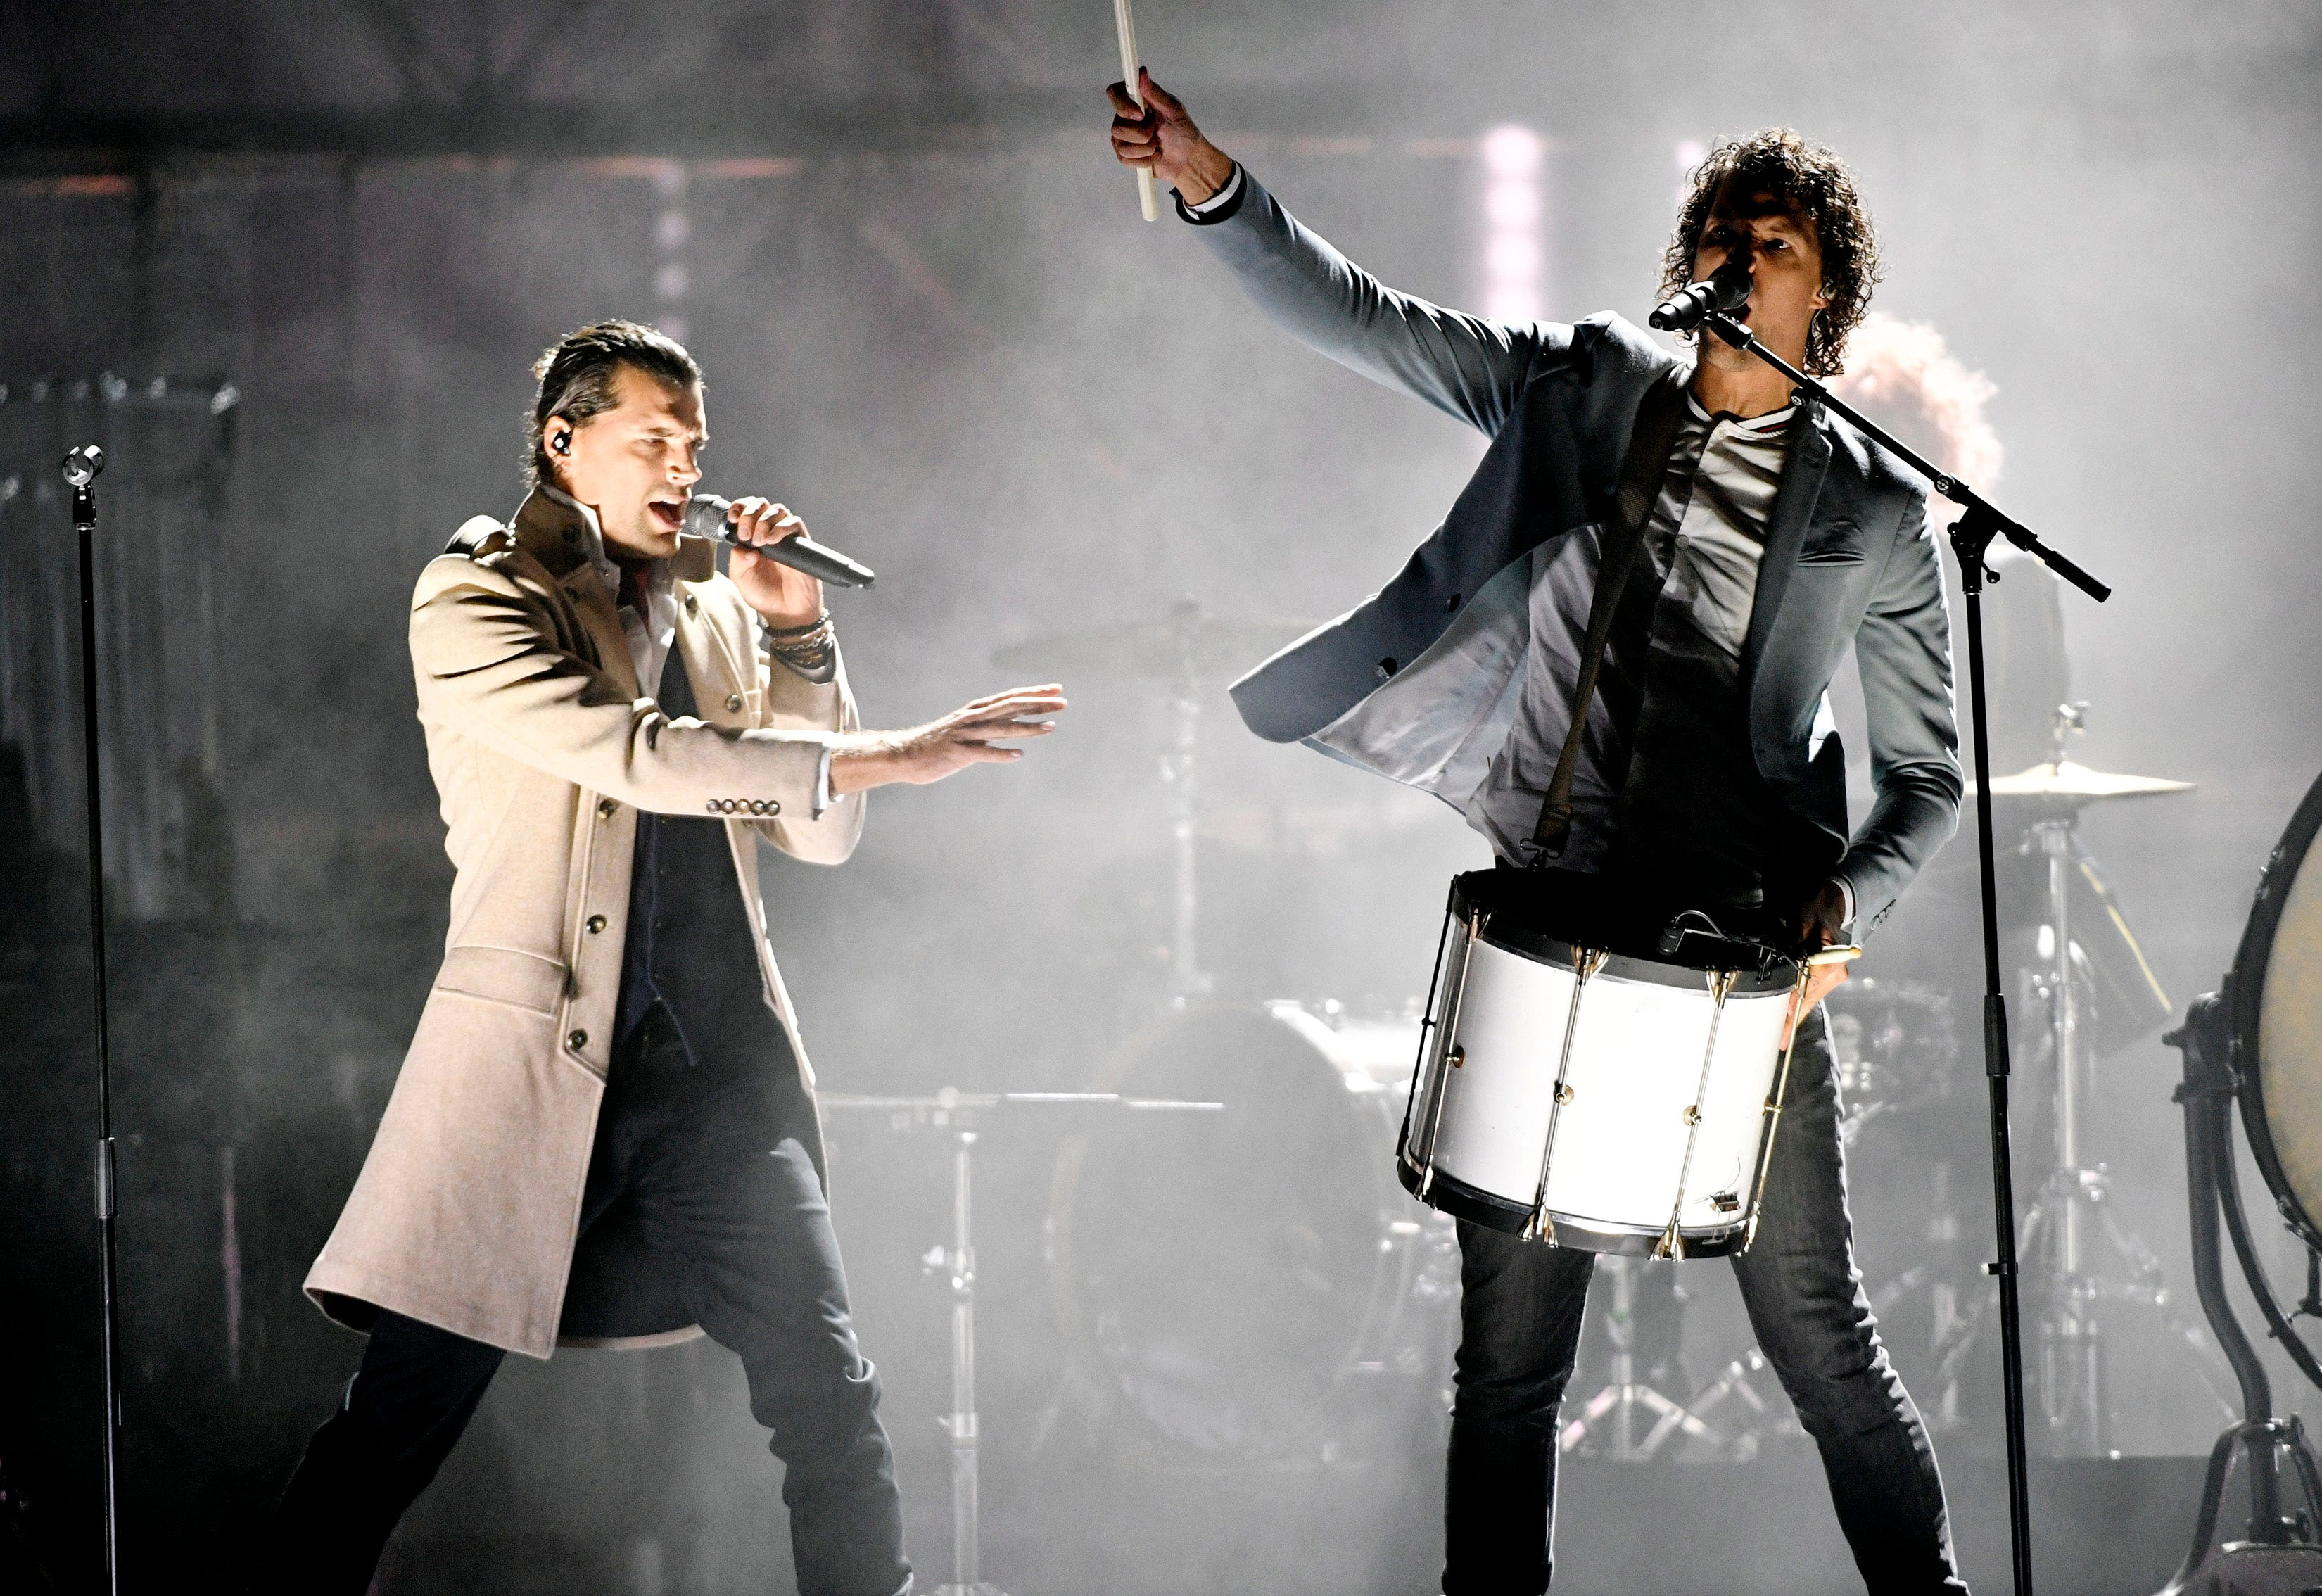 for KING & COUNTRY 'Little Drummer Boy' video goes viral